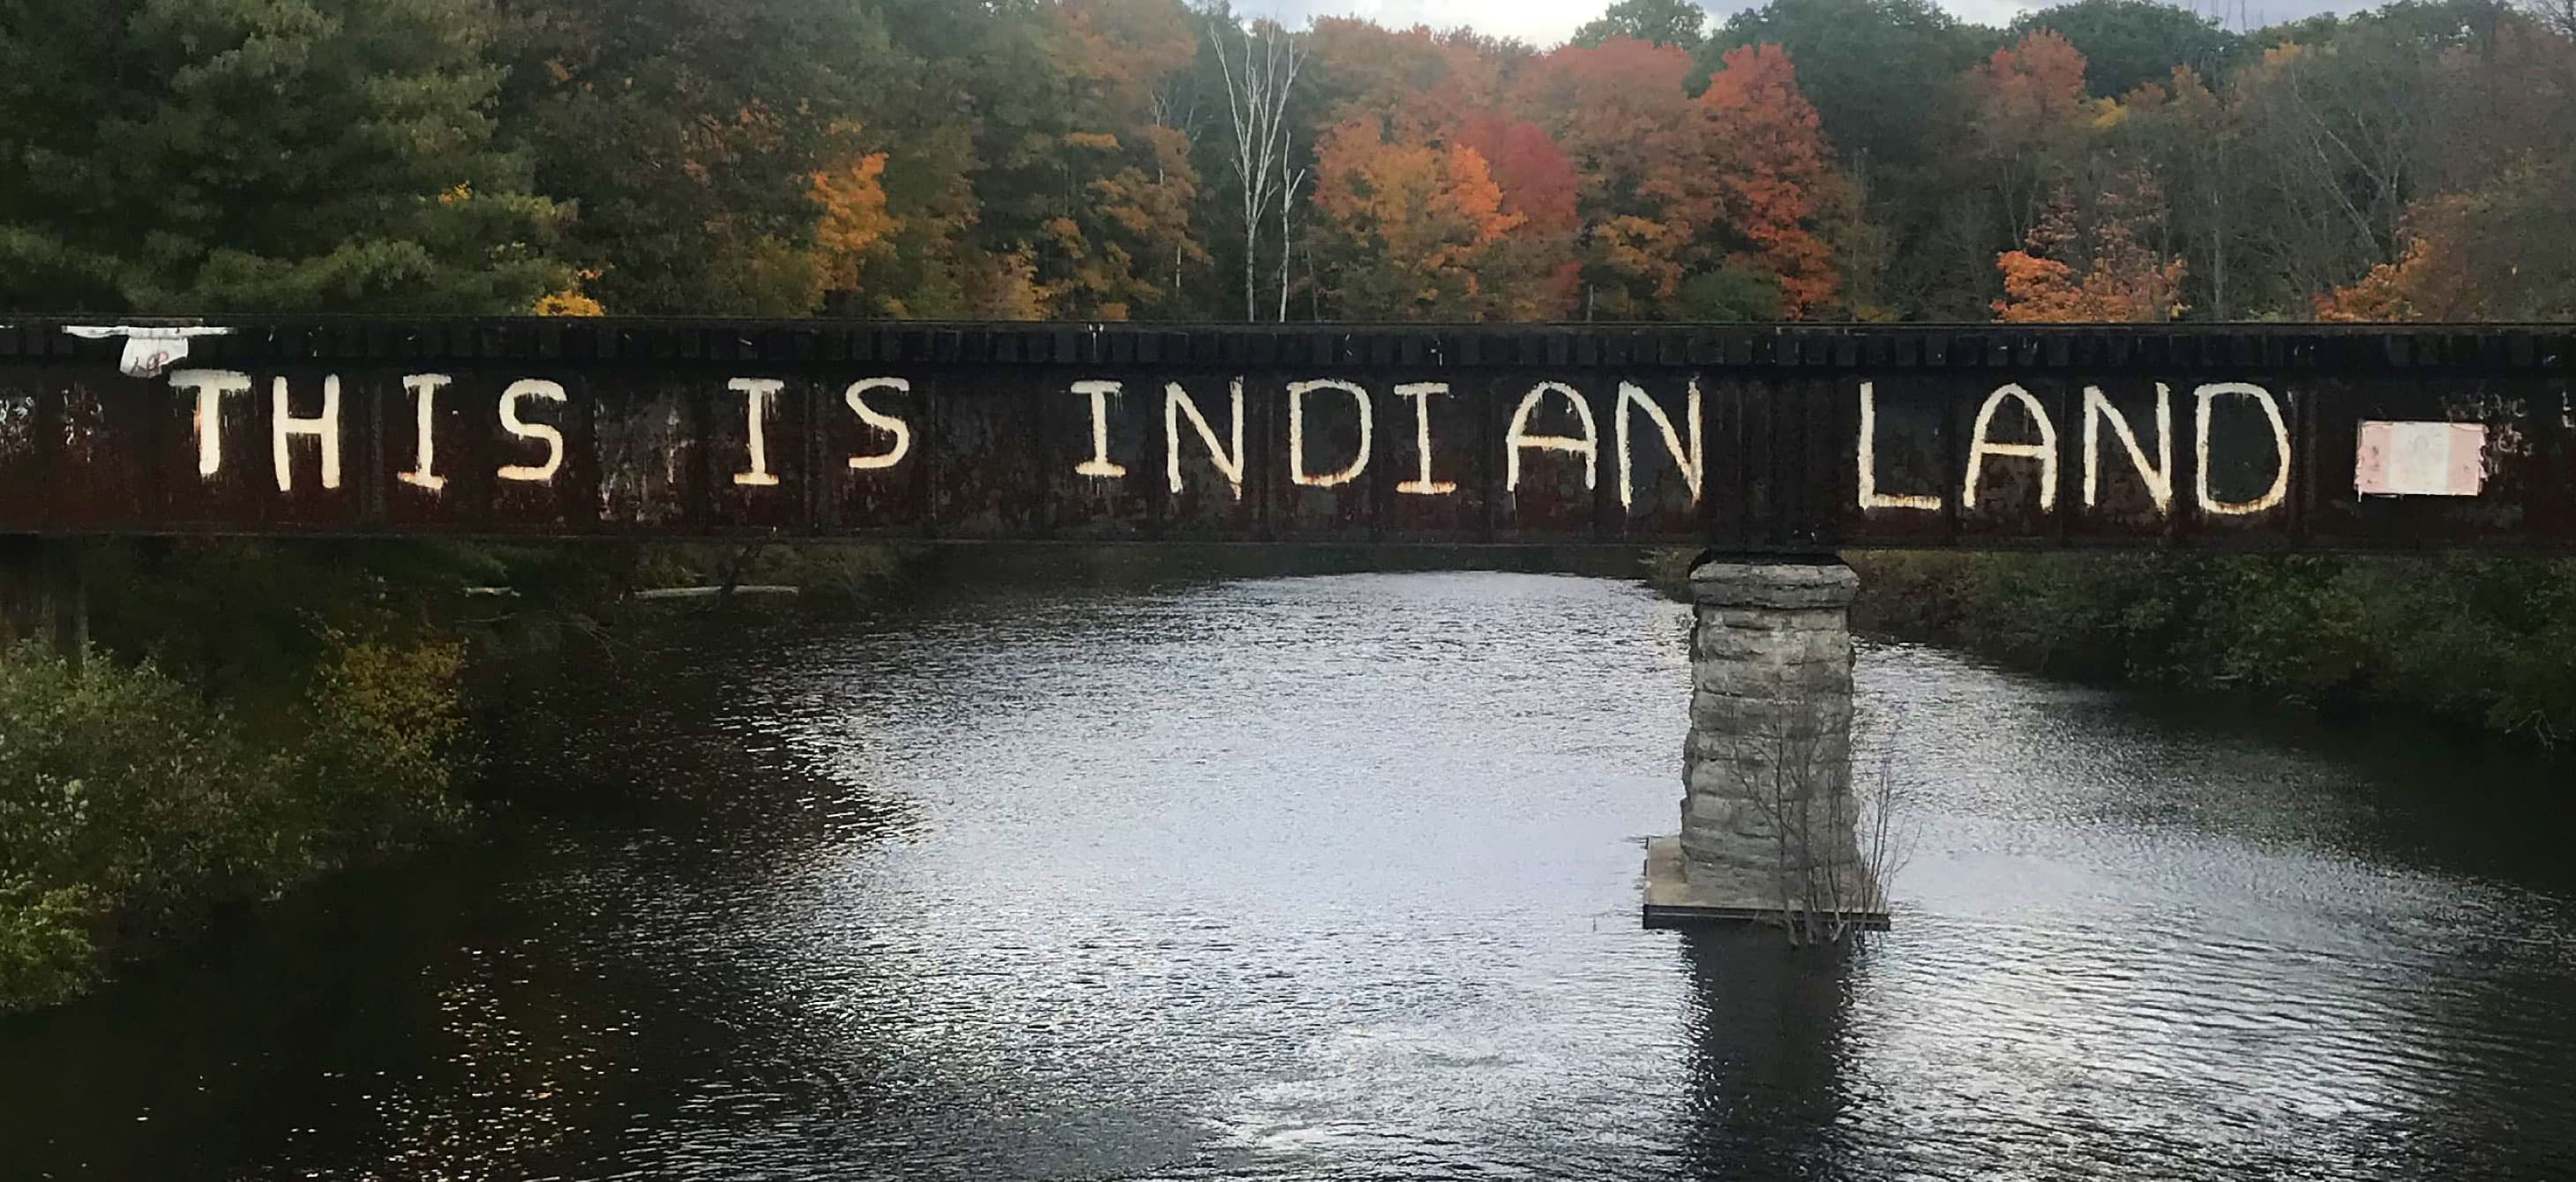 A bridge with this is Indian land graffiti